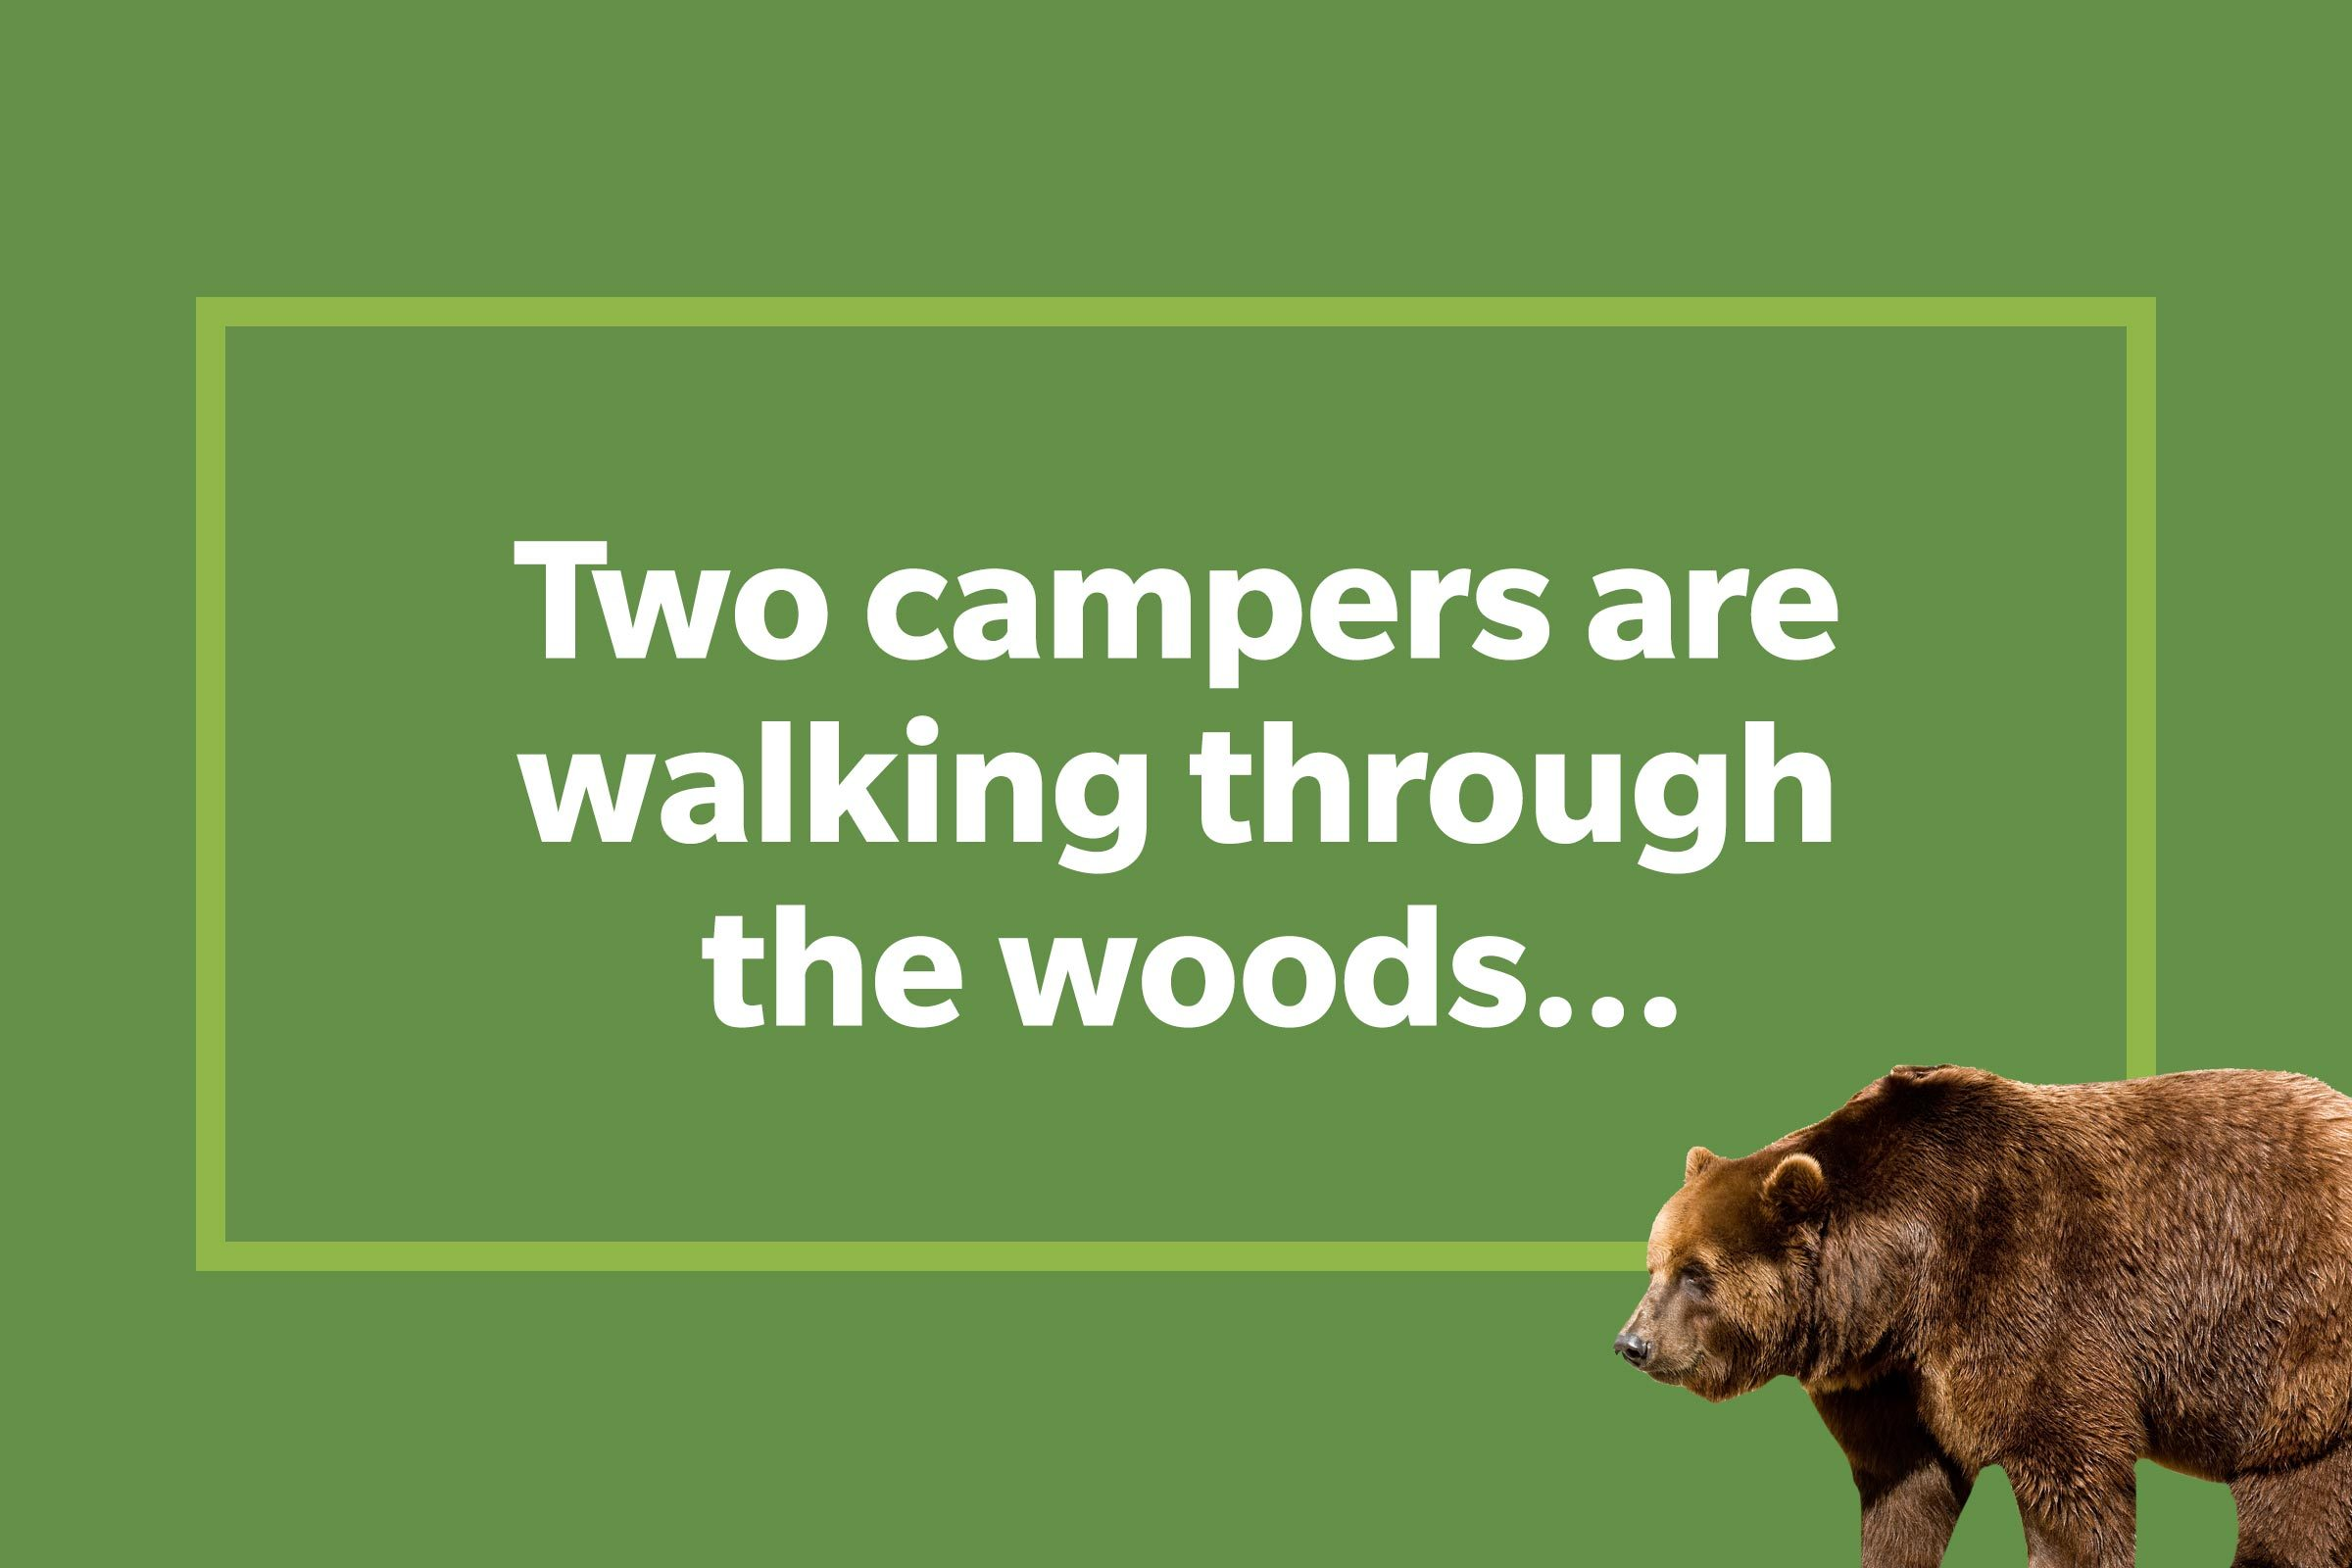 Two campers are walking through the woods...